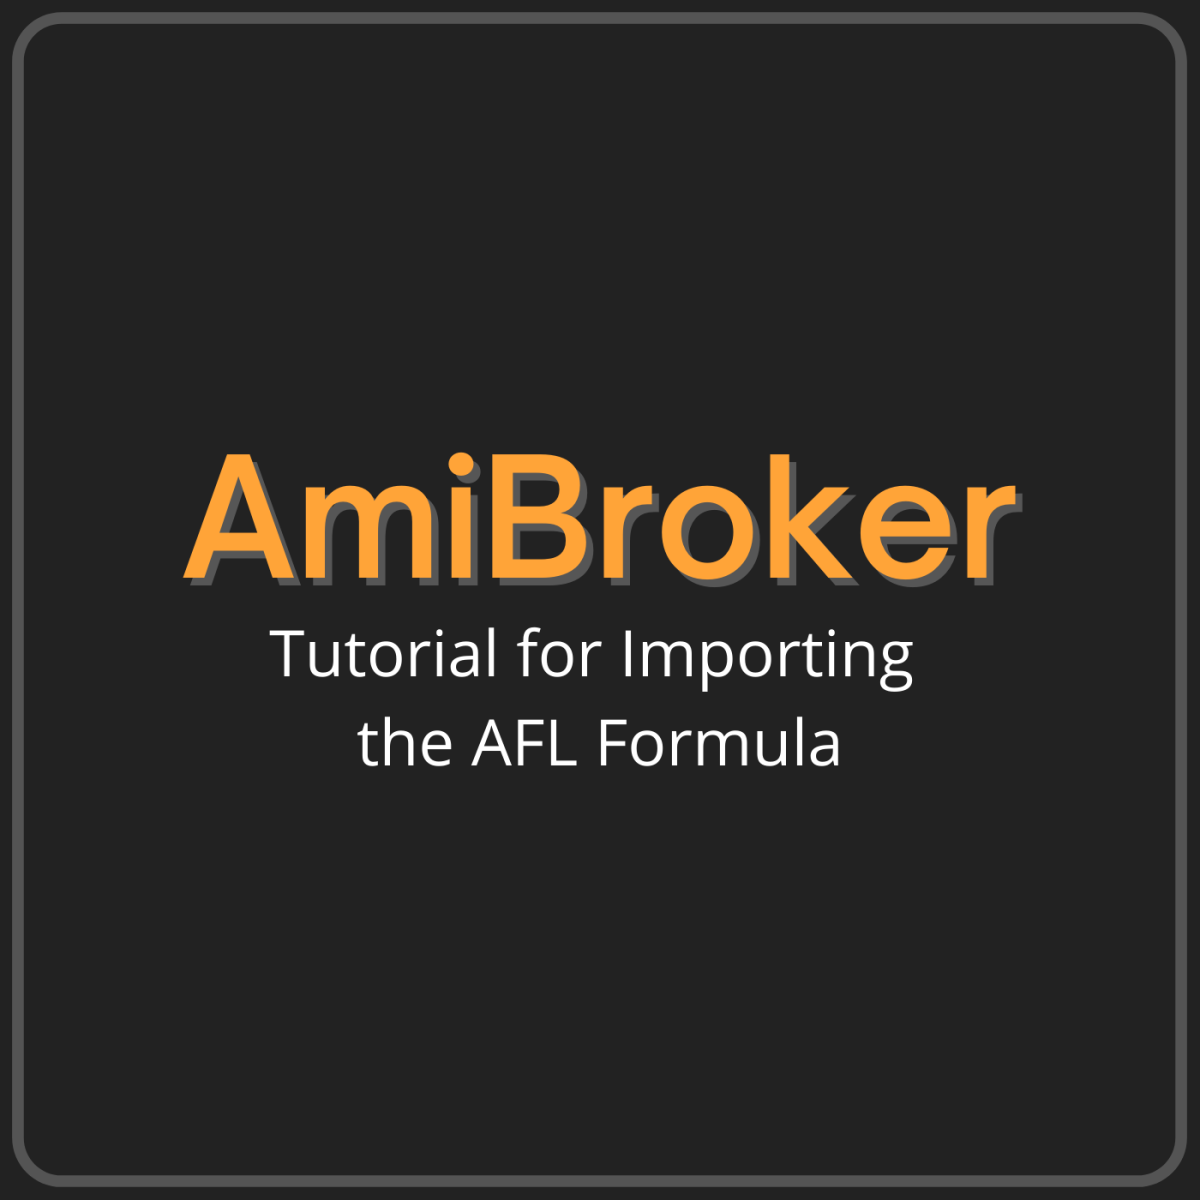 How to Import the AFL Formula in AmiBroker